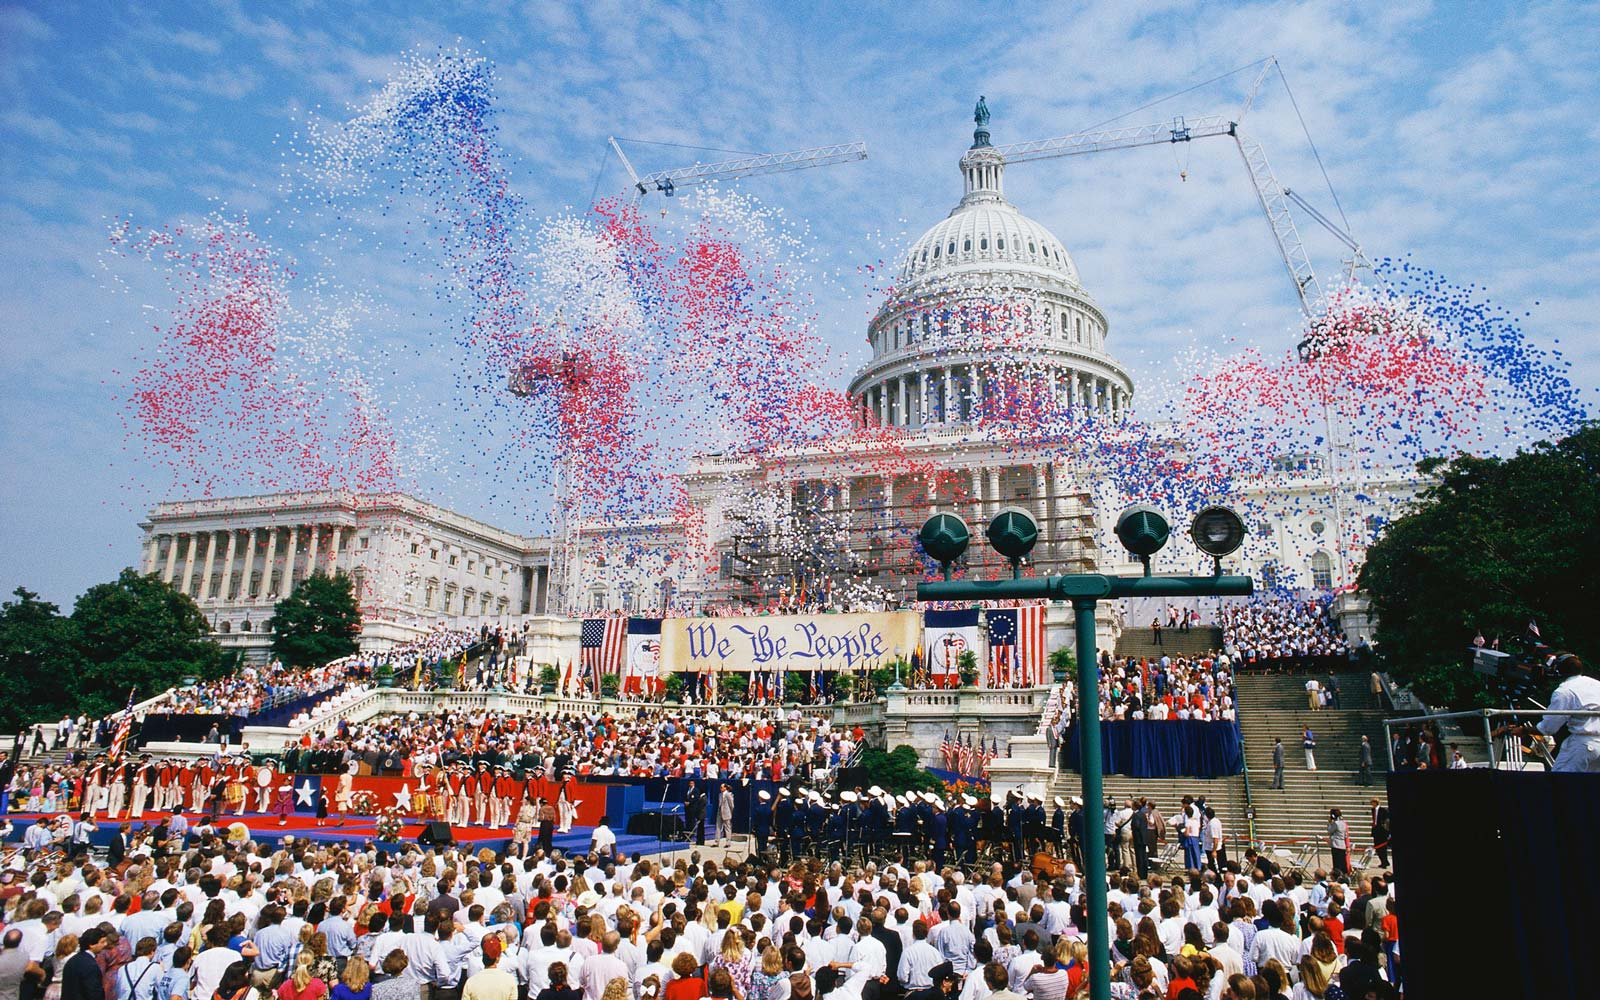 Celebration at the Capitol building, Washington, DC